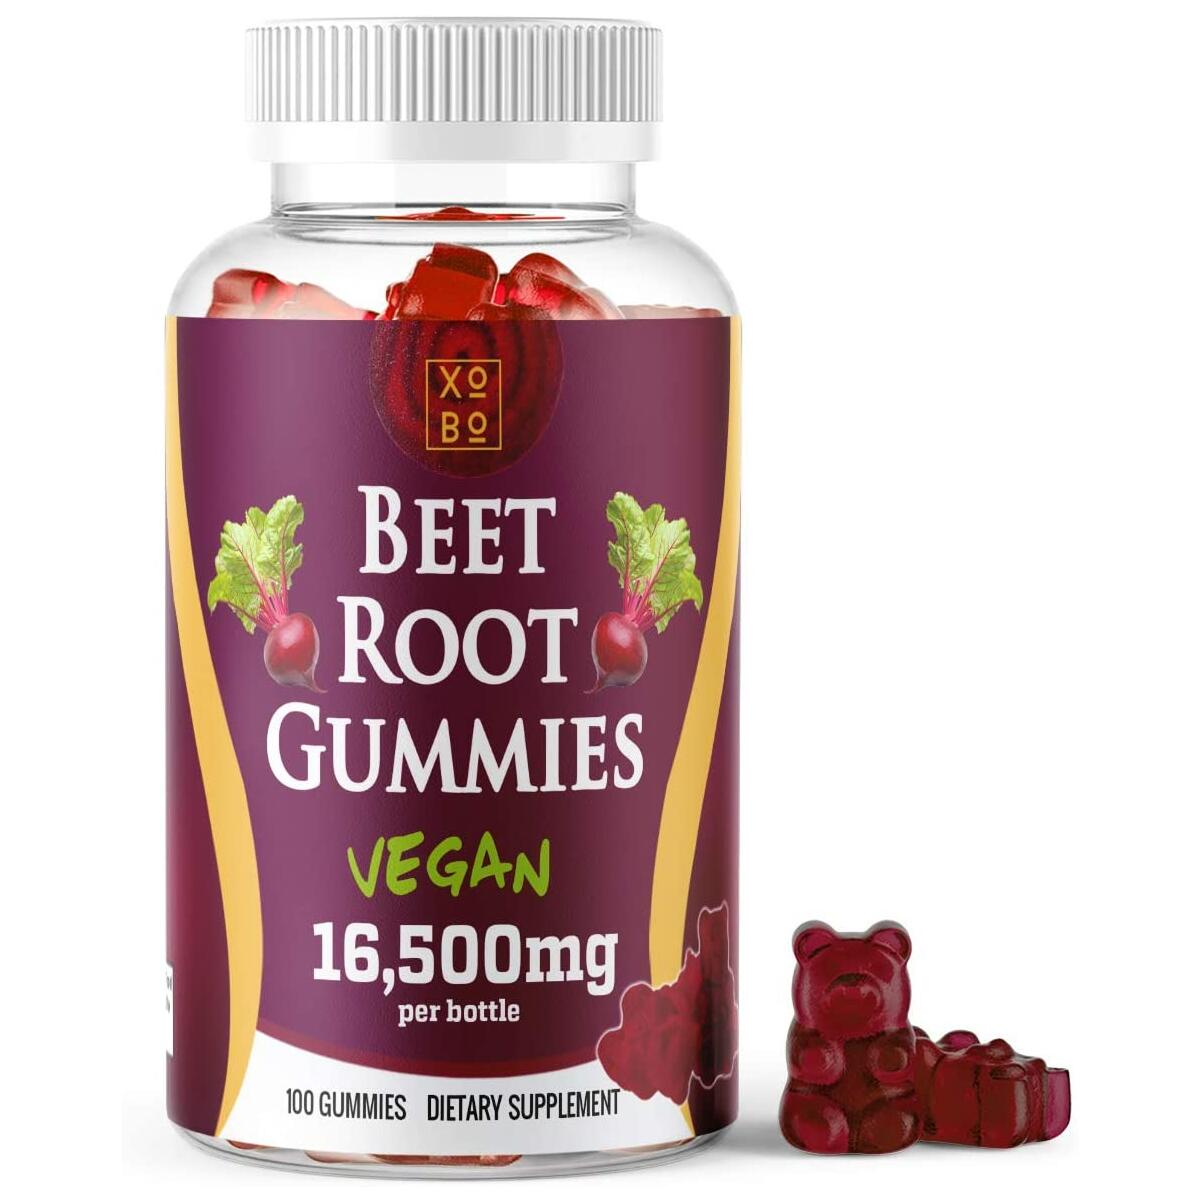 Xobo Beet Root Powder Gummies Supplement, 100 Gummy Soft Chews, Natural and Organic Nitric Oxide Booster Cleanse Promotes Circulation and Digestive Health, Vegan